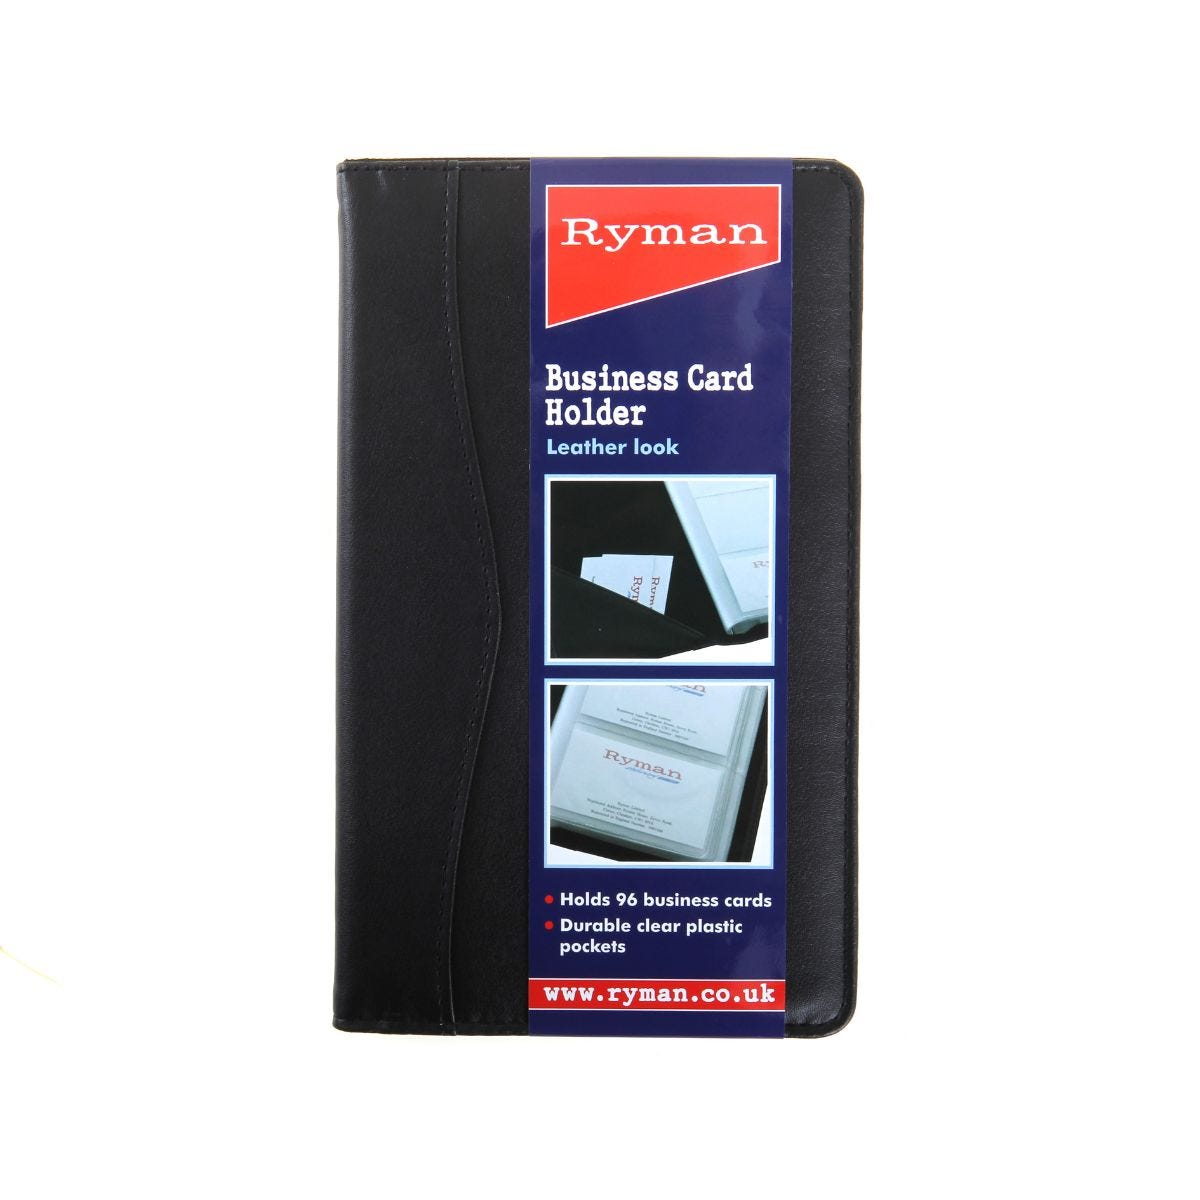 Business Card Holders Desk Accessories Office Supplies - Ryman